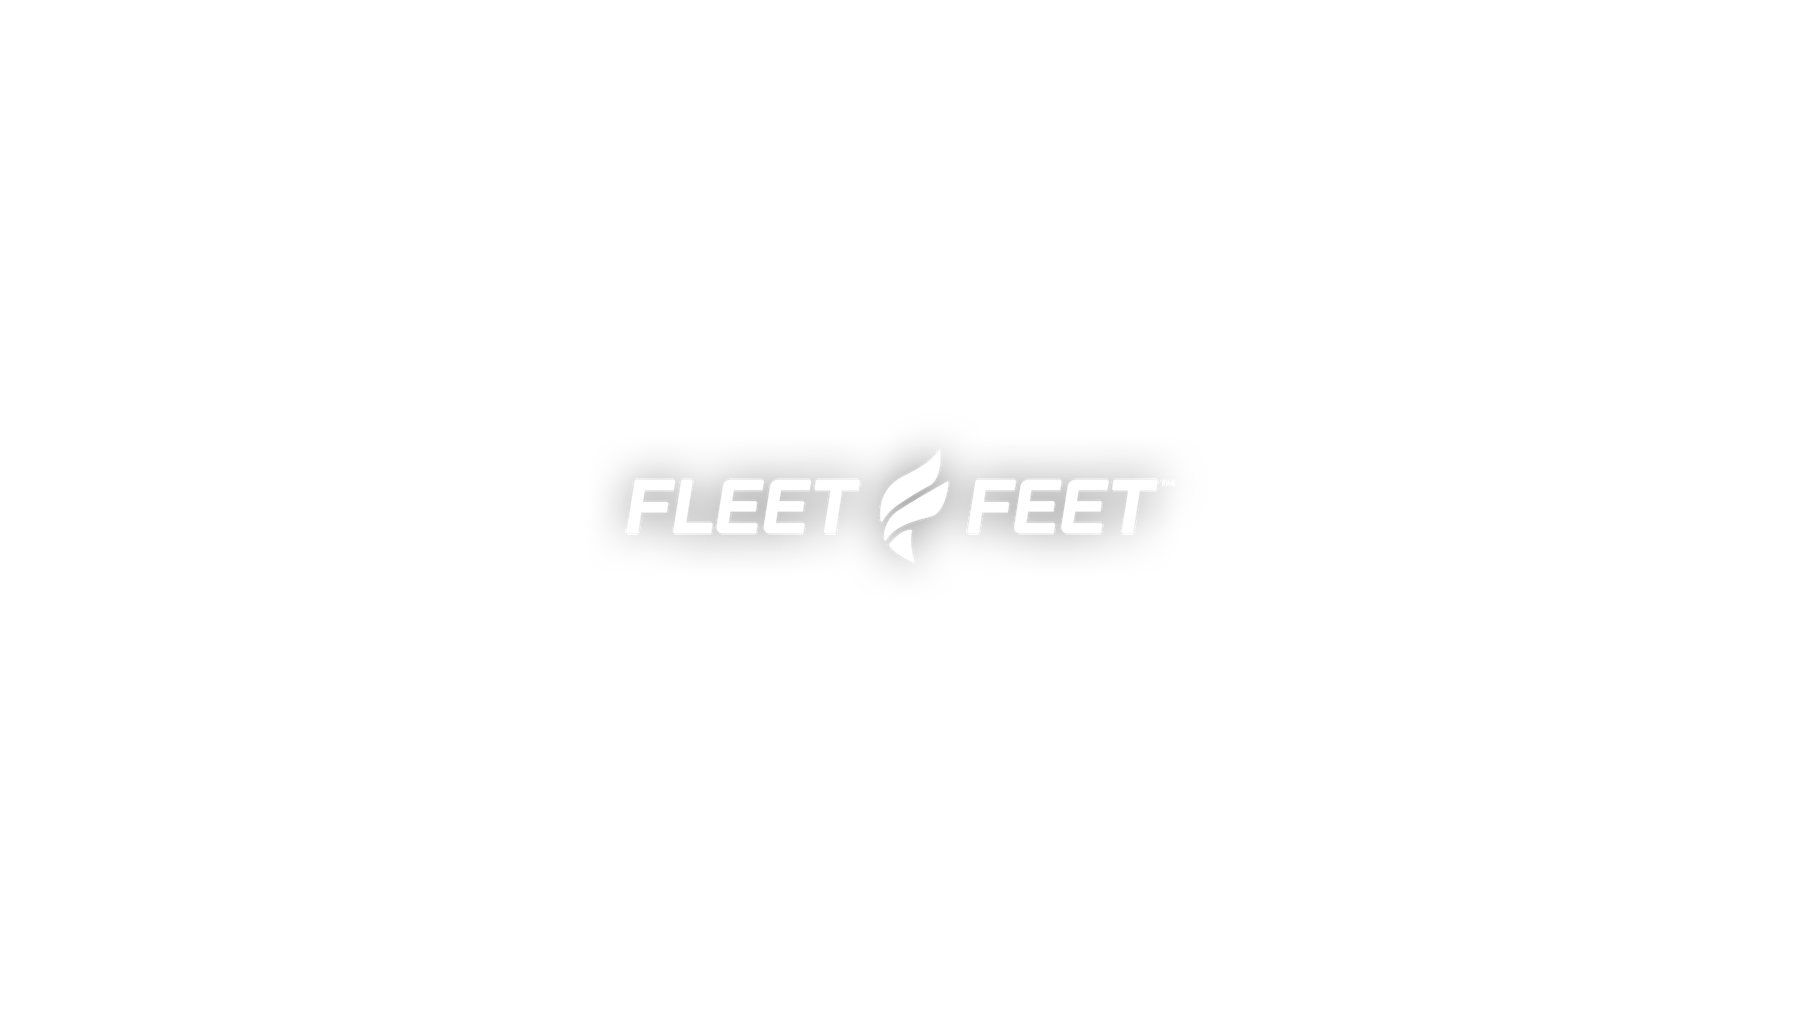 Fleet feet logo center